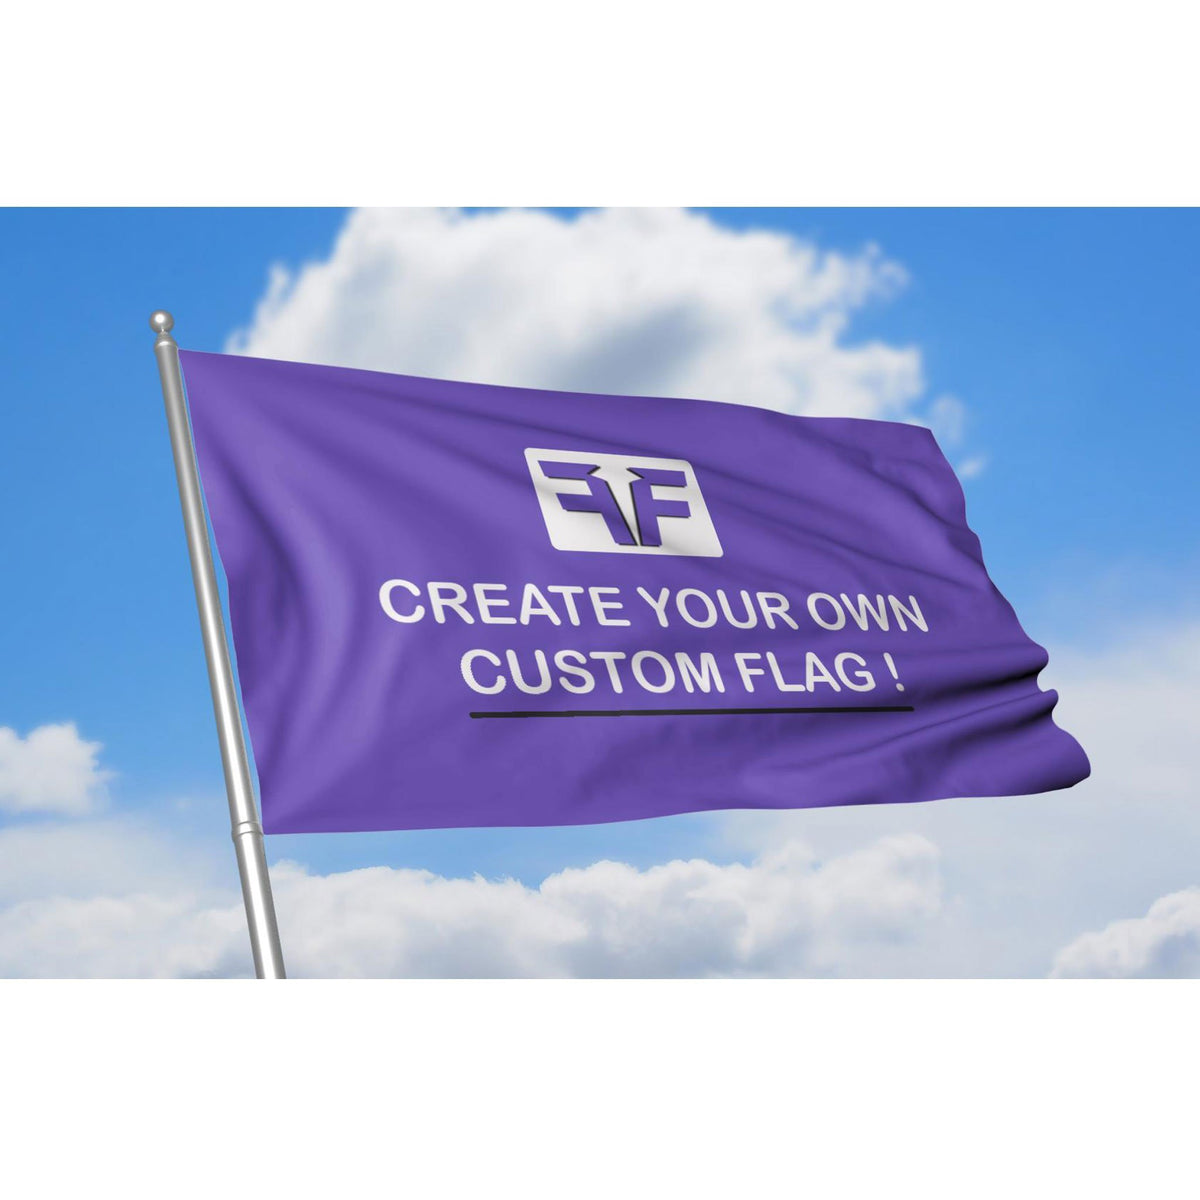 Custom Flags - Low Price Leader - Free Design Help - No Set Up Fees